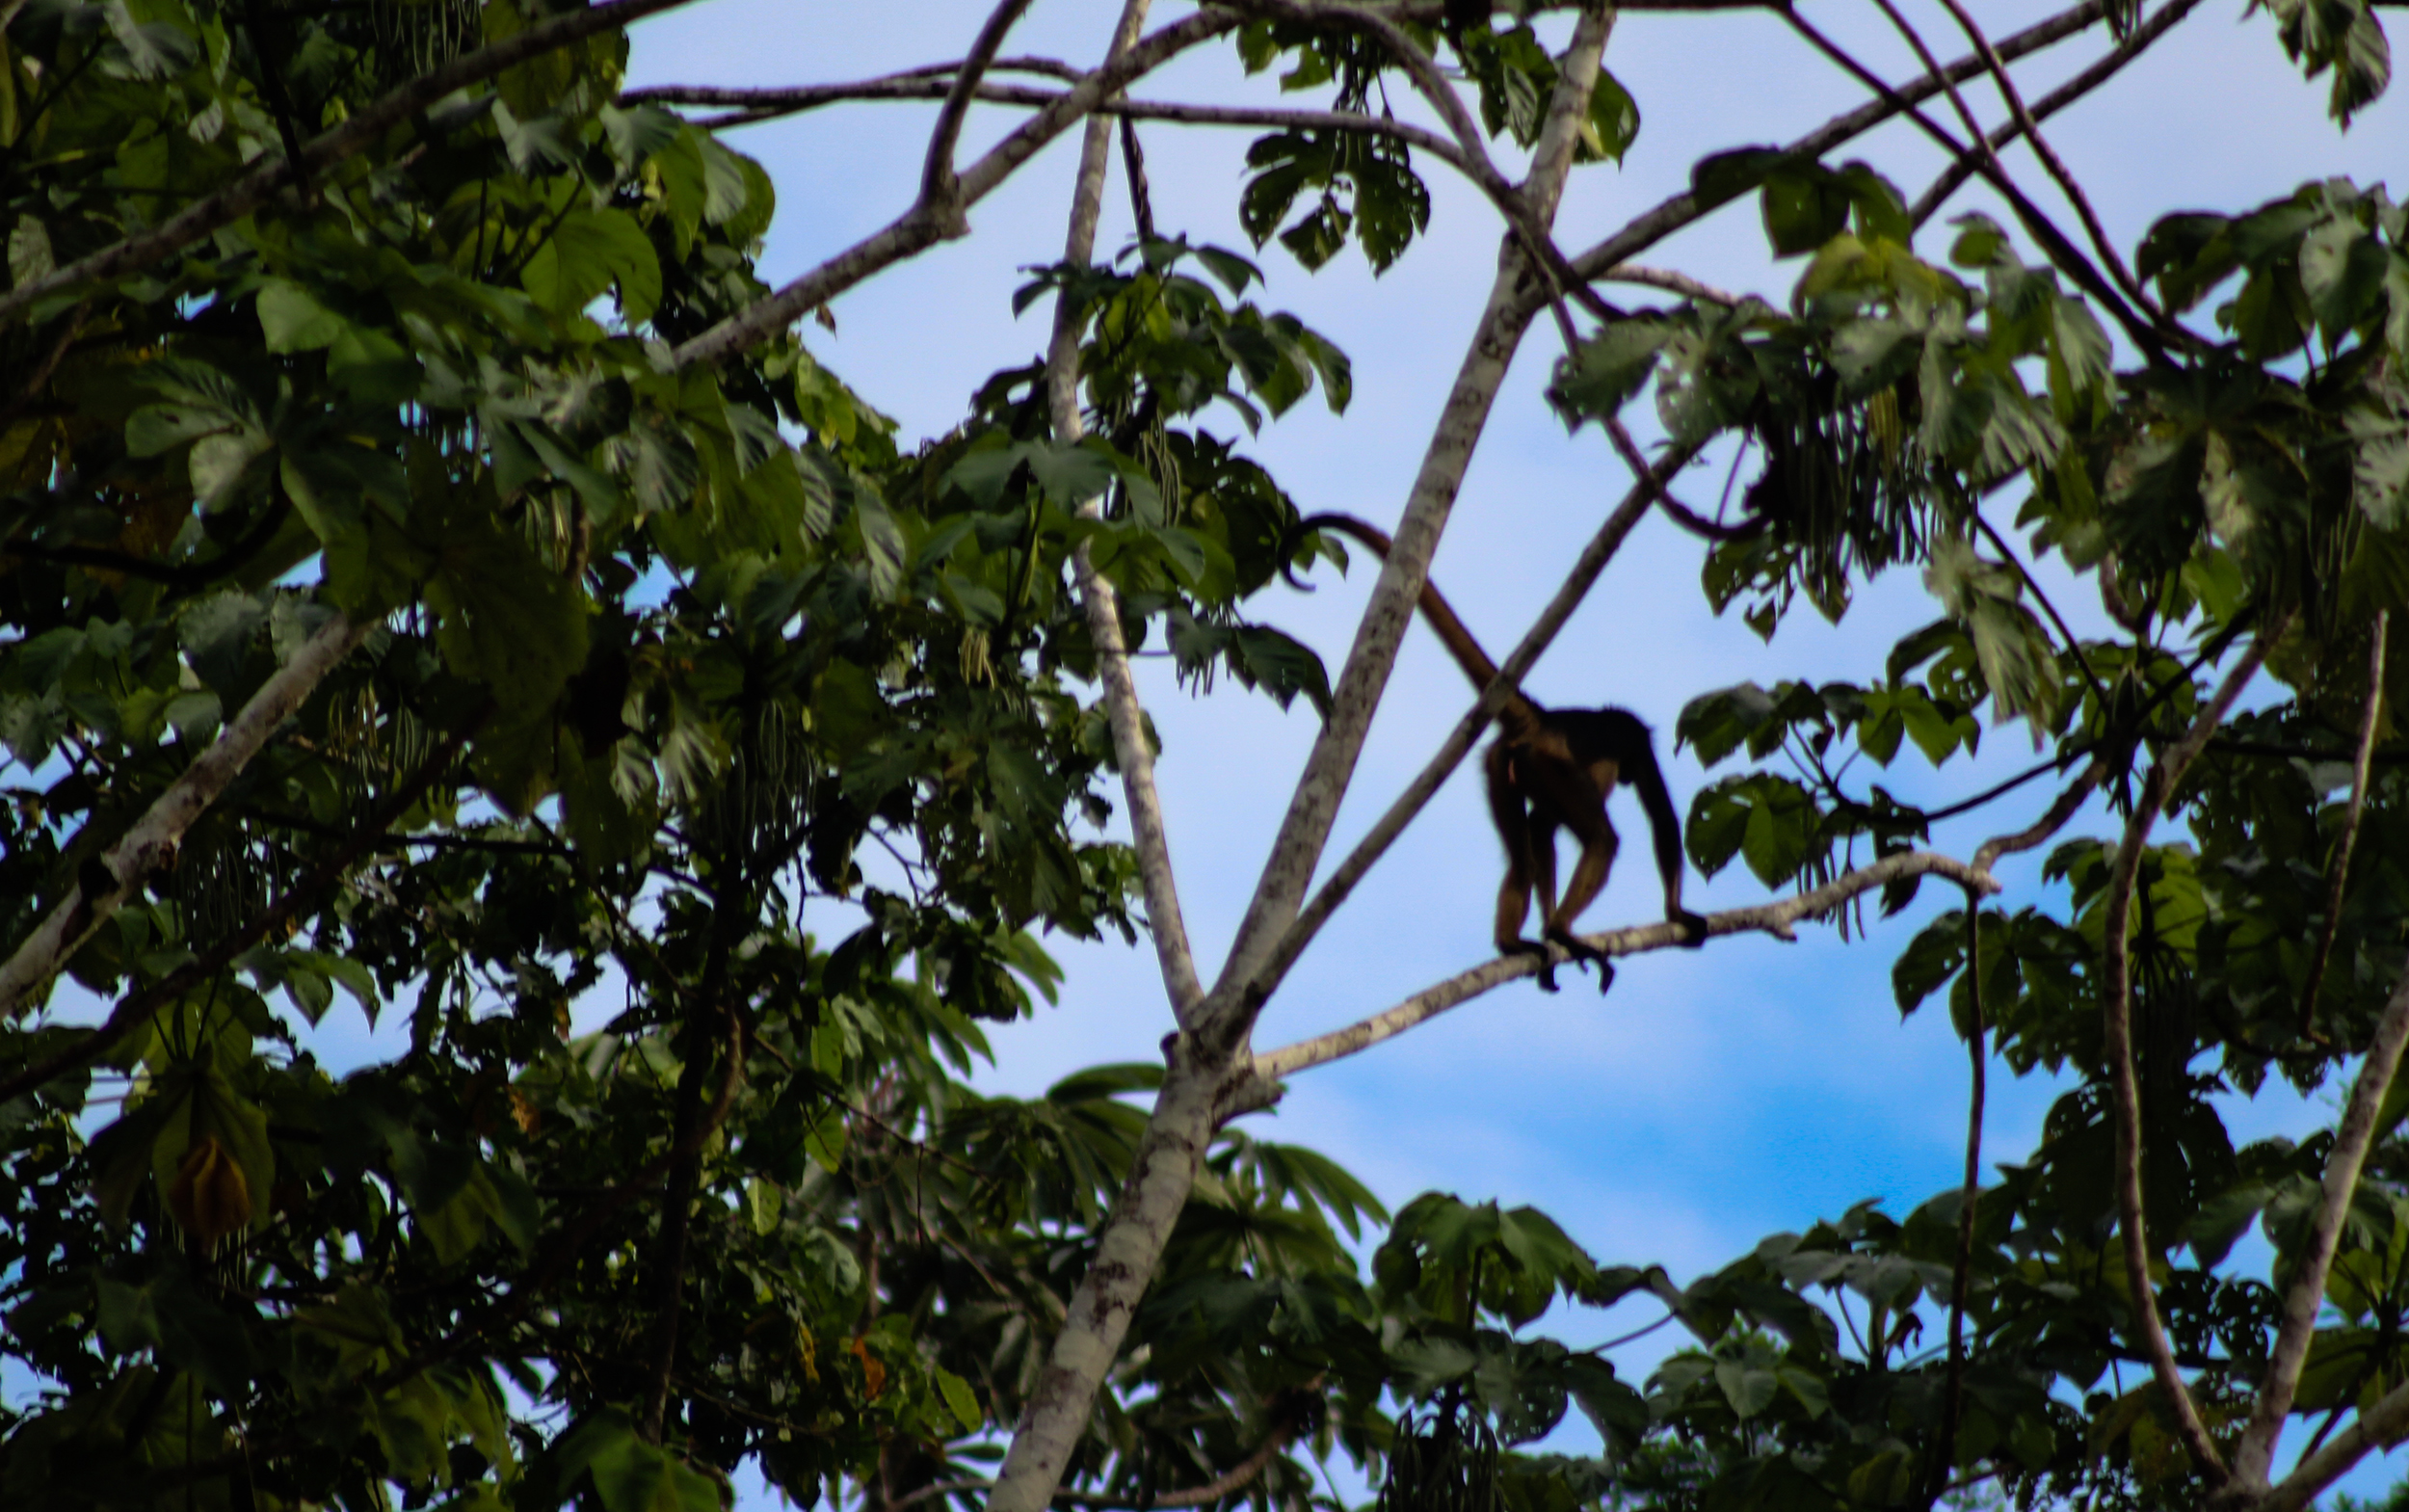 A spider monkey races across branches, as at home as a person on a sidewalk